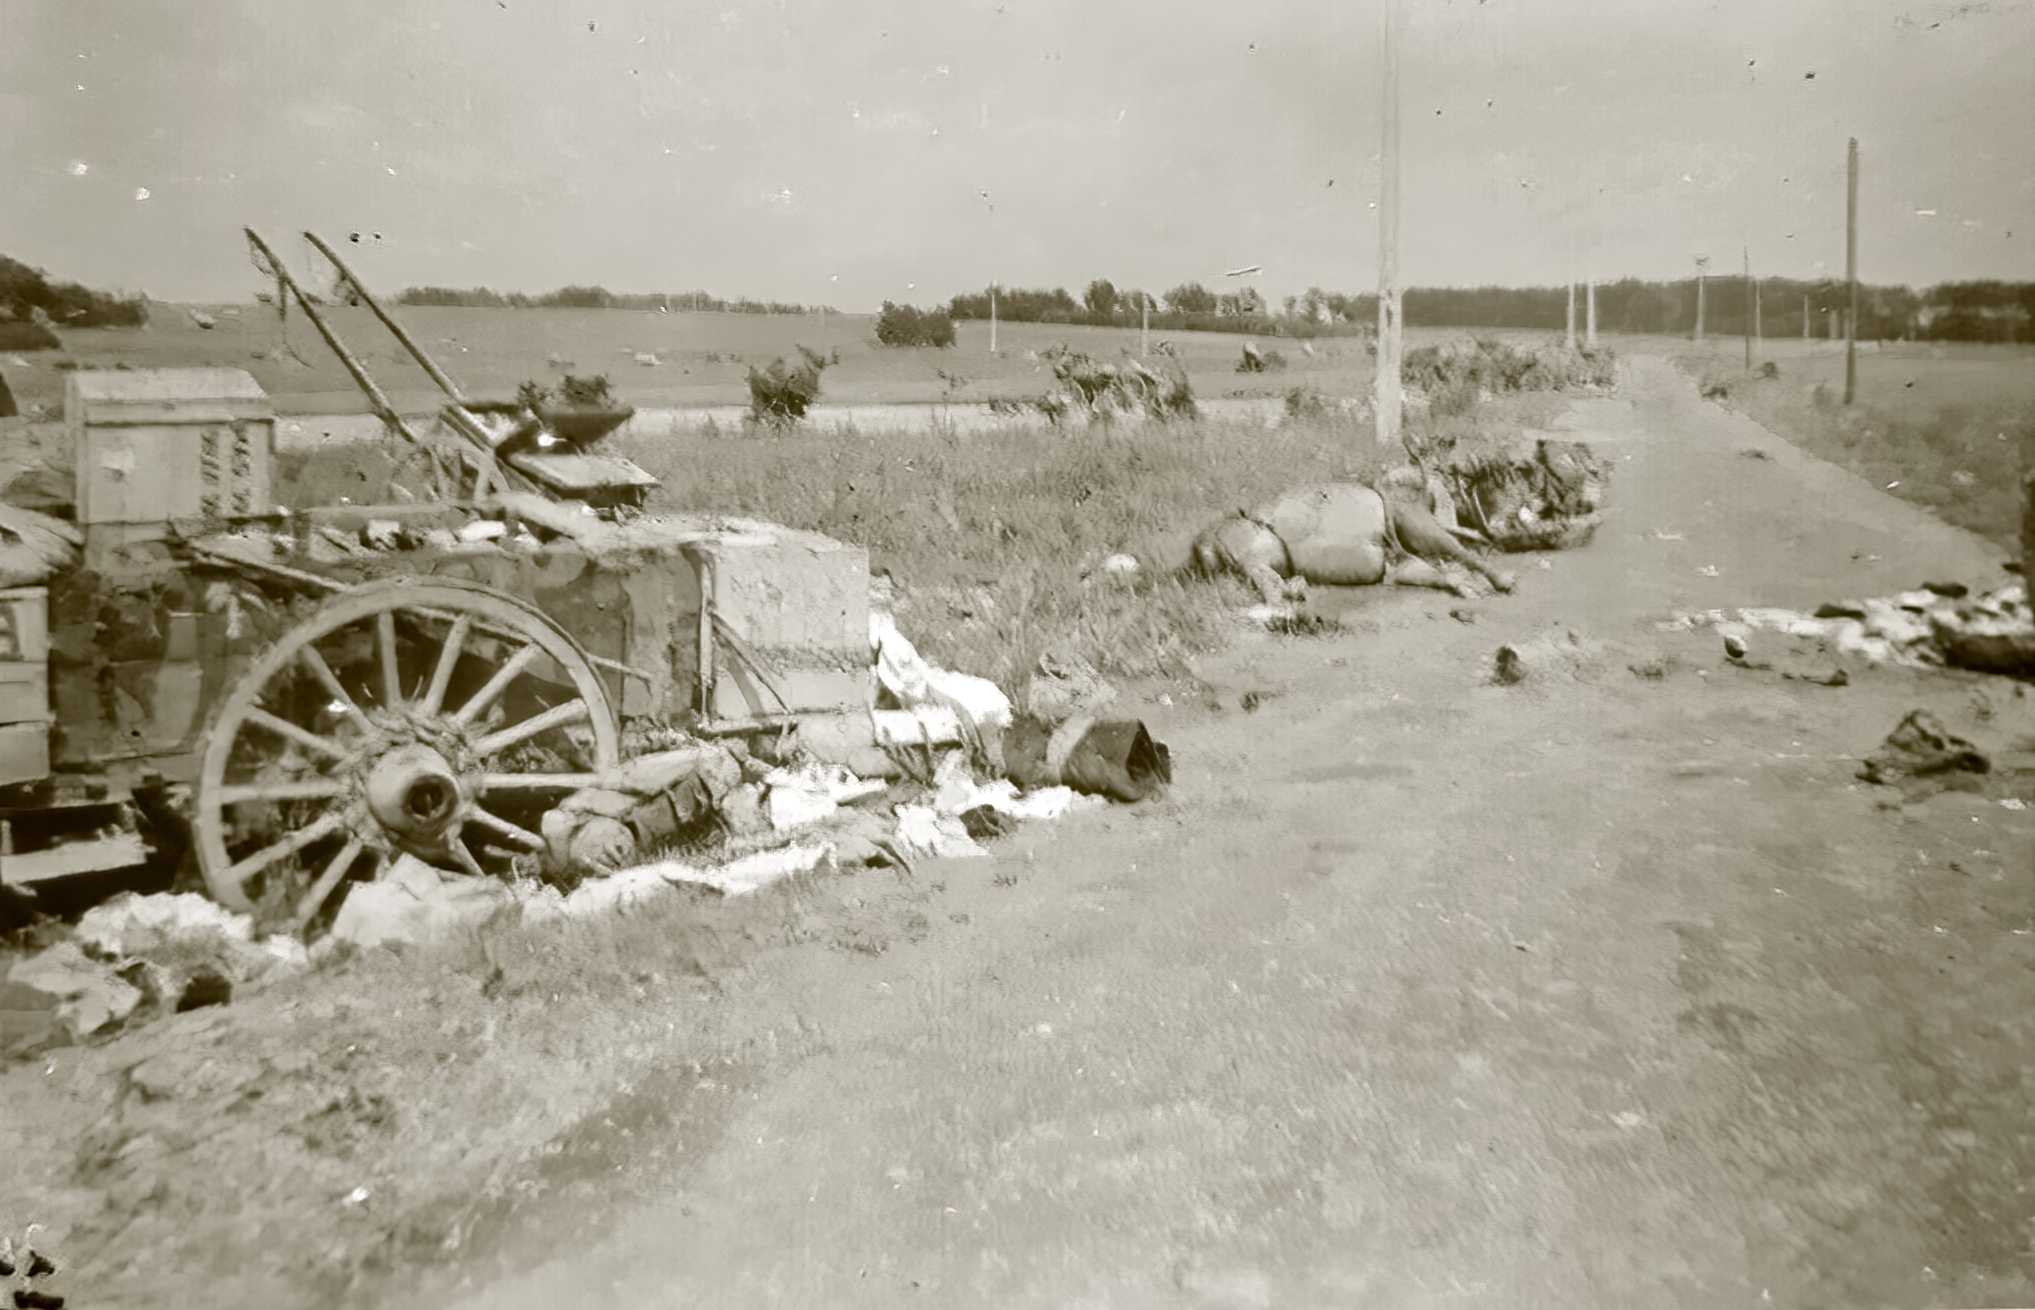 French road near Amiens showing the aftermath of the chaos suffered during the fall of France 1940 ebay 01